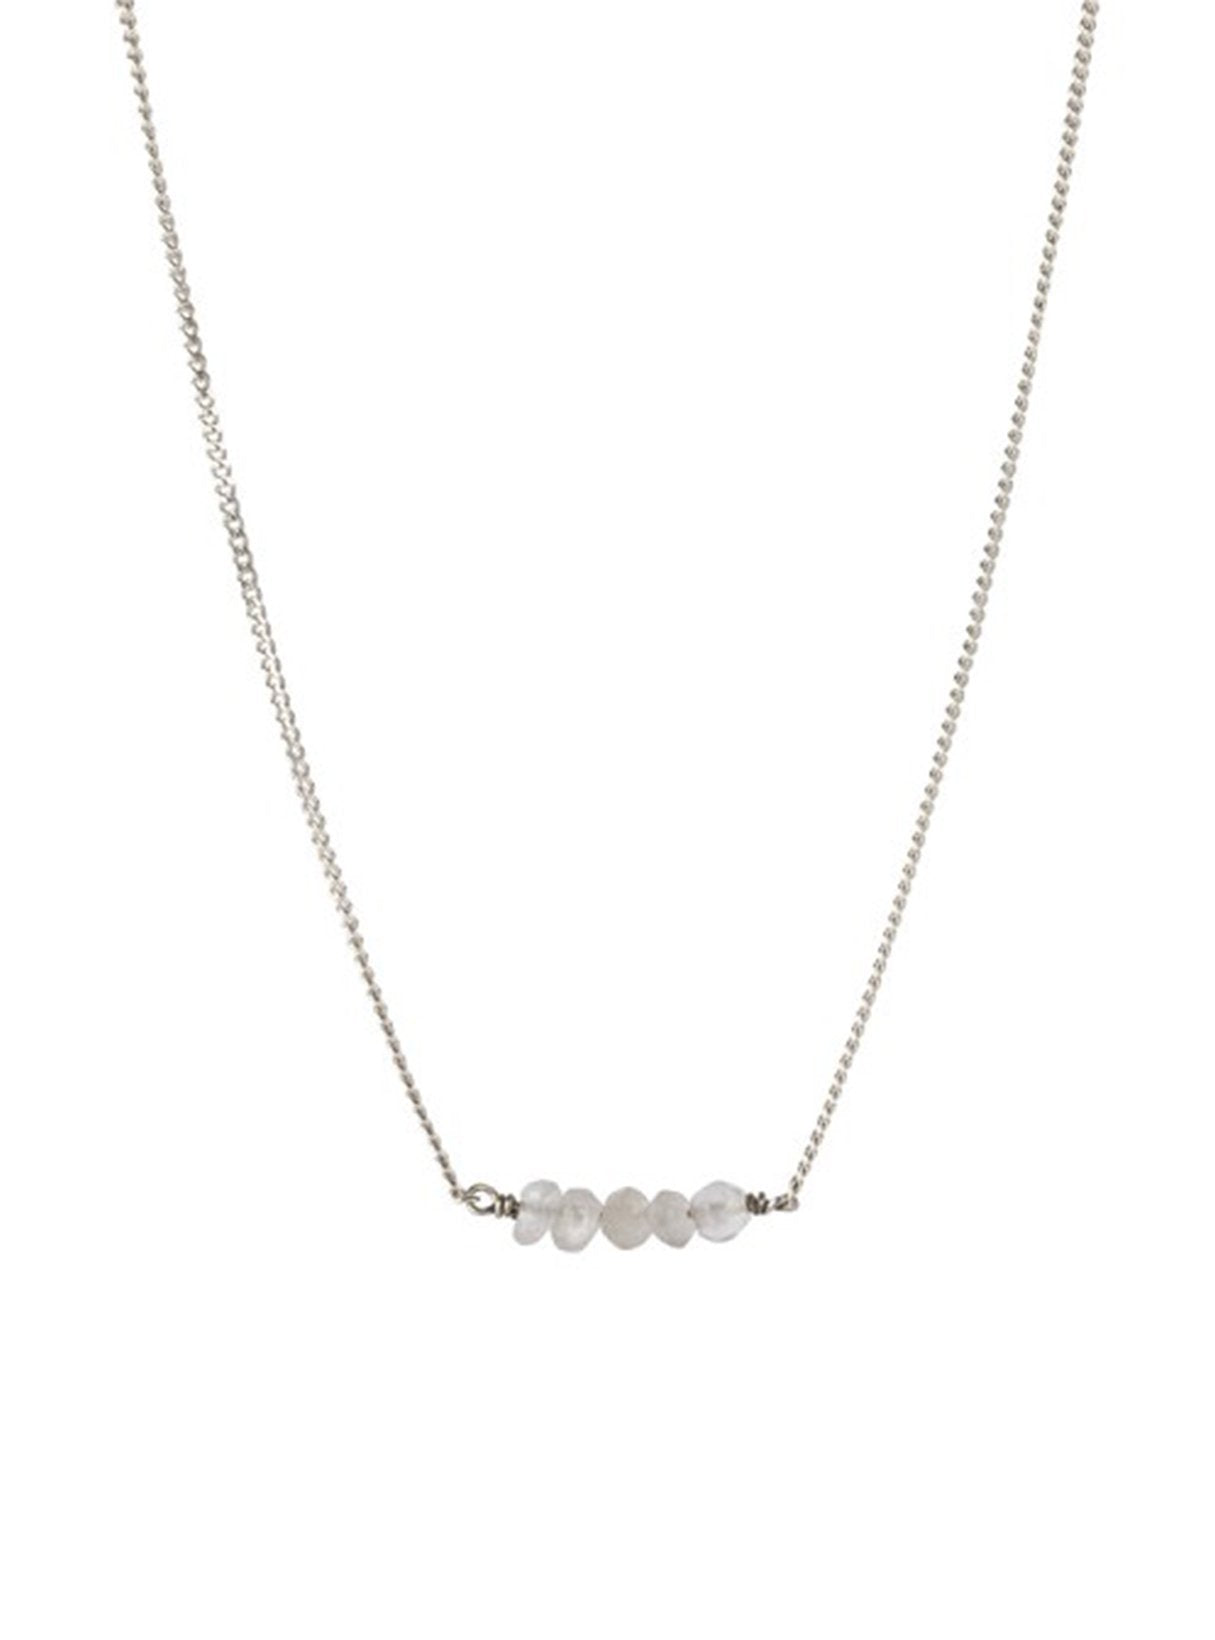 Petite moonstone necklace - sterling silver